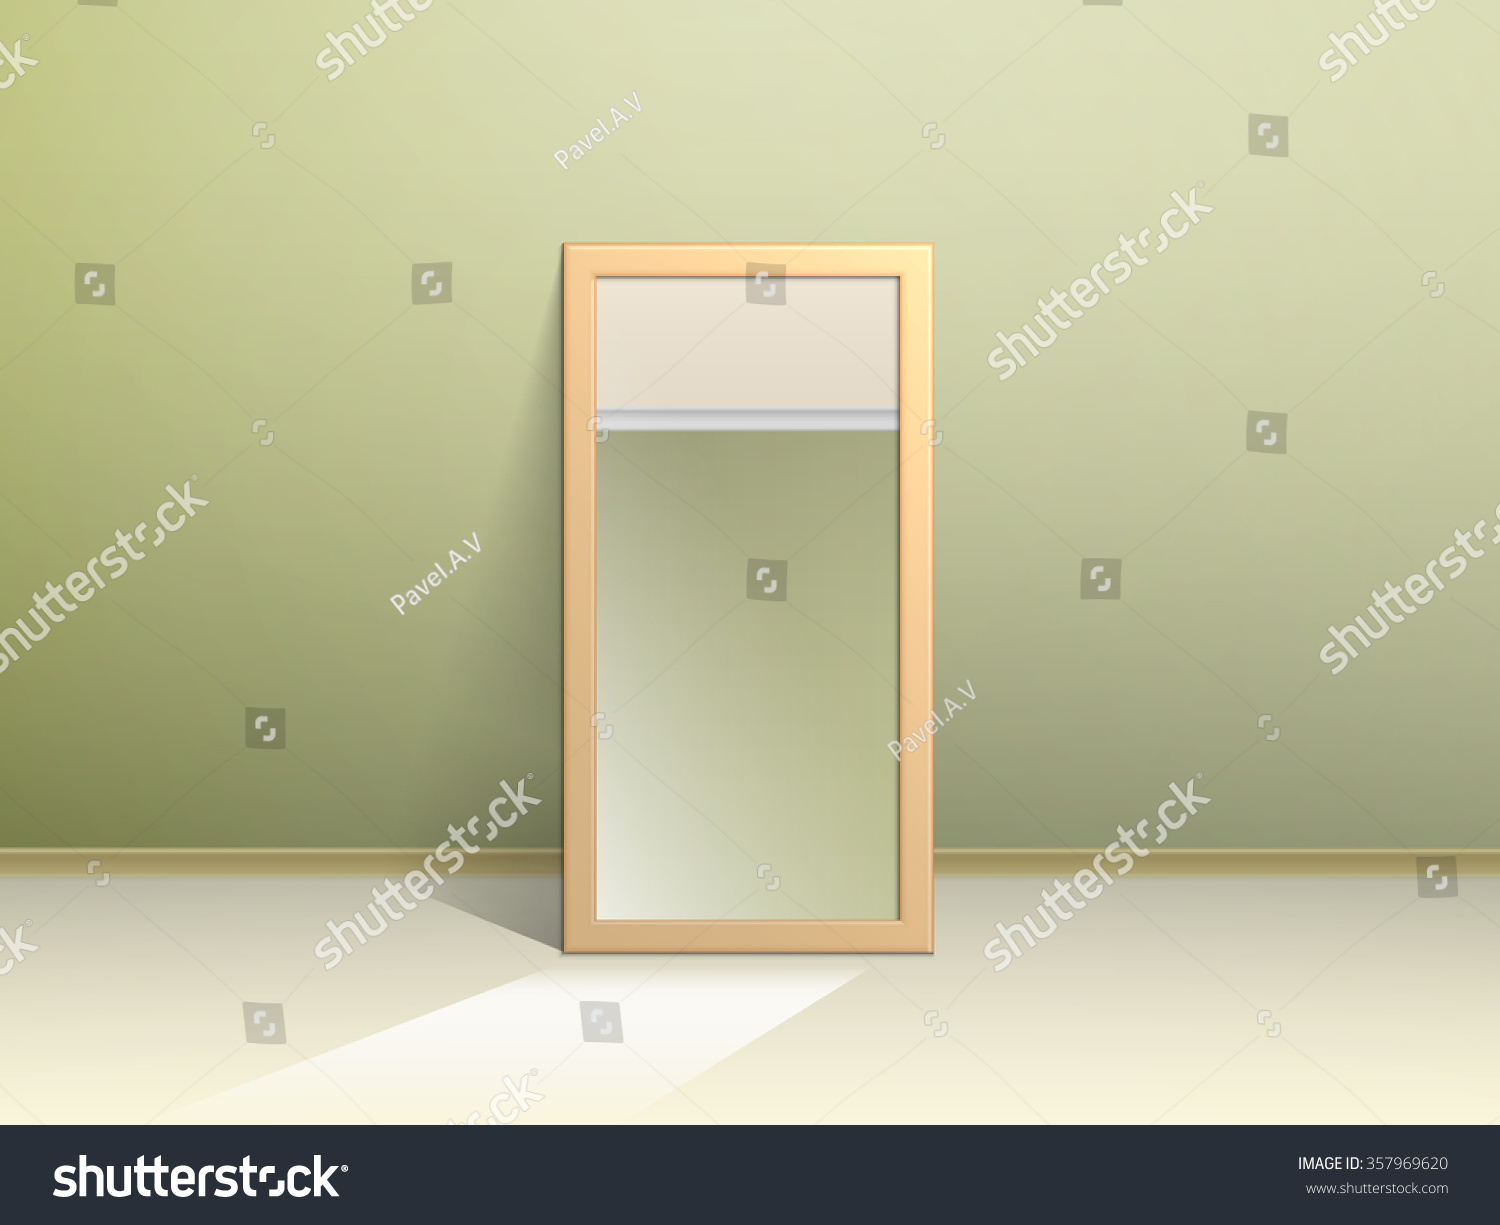 Mirror on floor reflects opposite wall stock vector for Opposite of floor